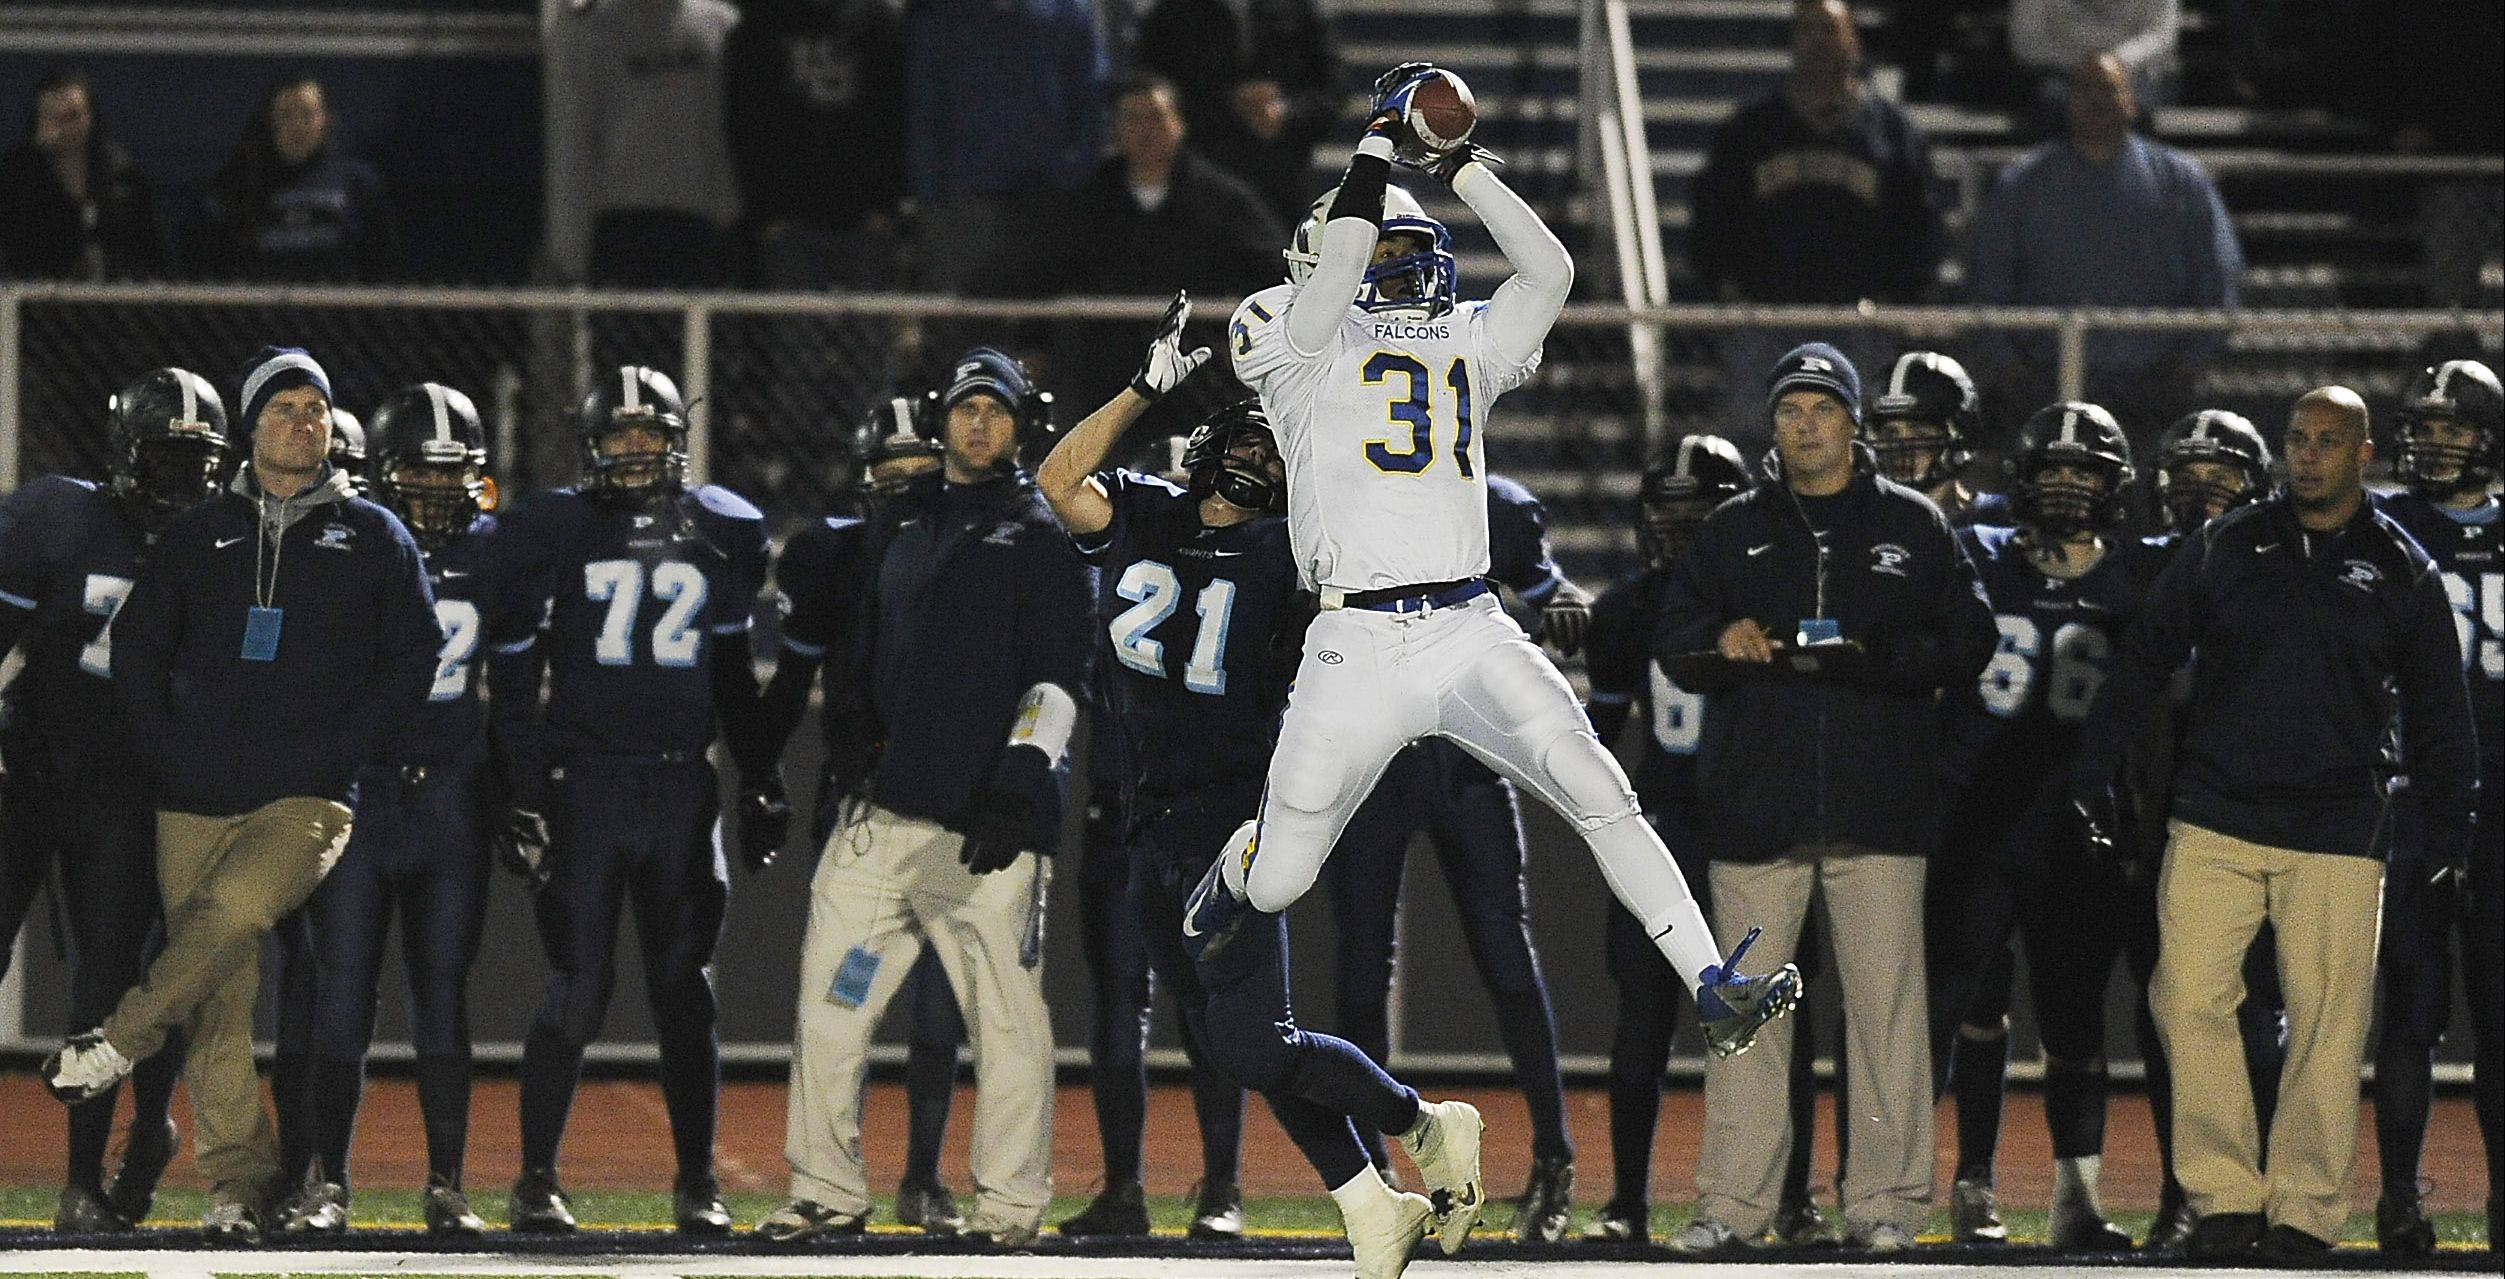 Wheaton North's Jaylen Howze leaps for an interception in front of Prospect's Joe Gleason in the fourth quarter on Friday night in Mt. Prospect.